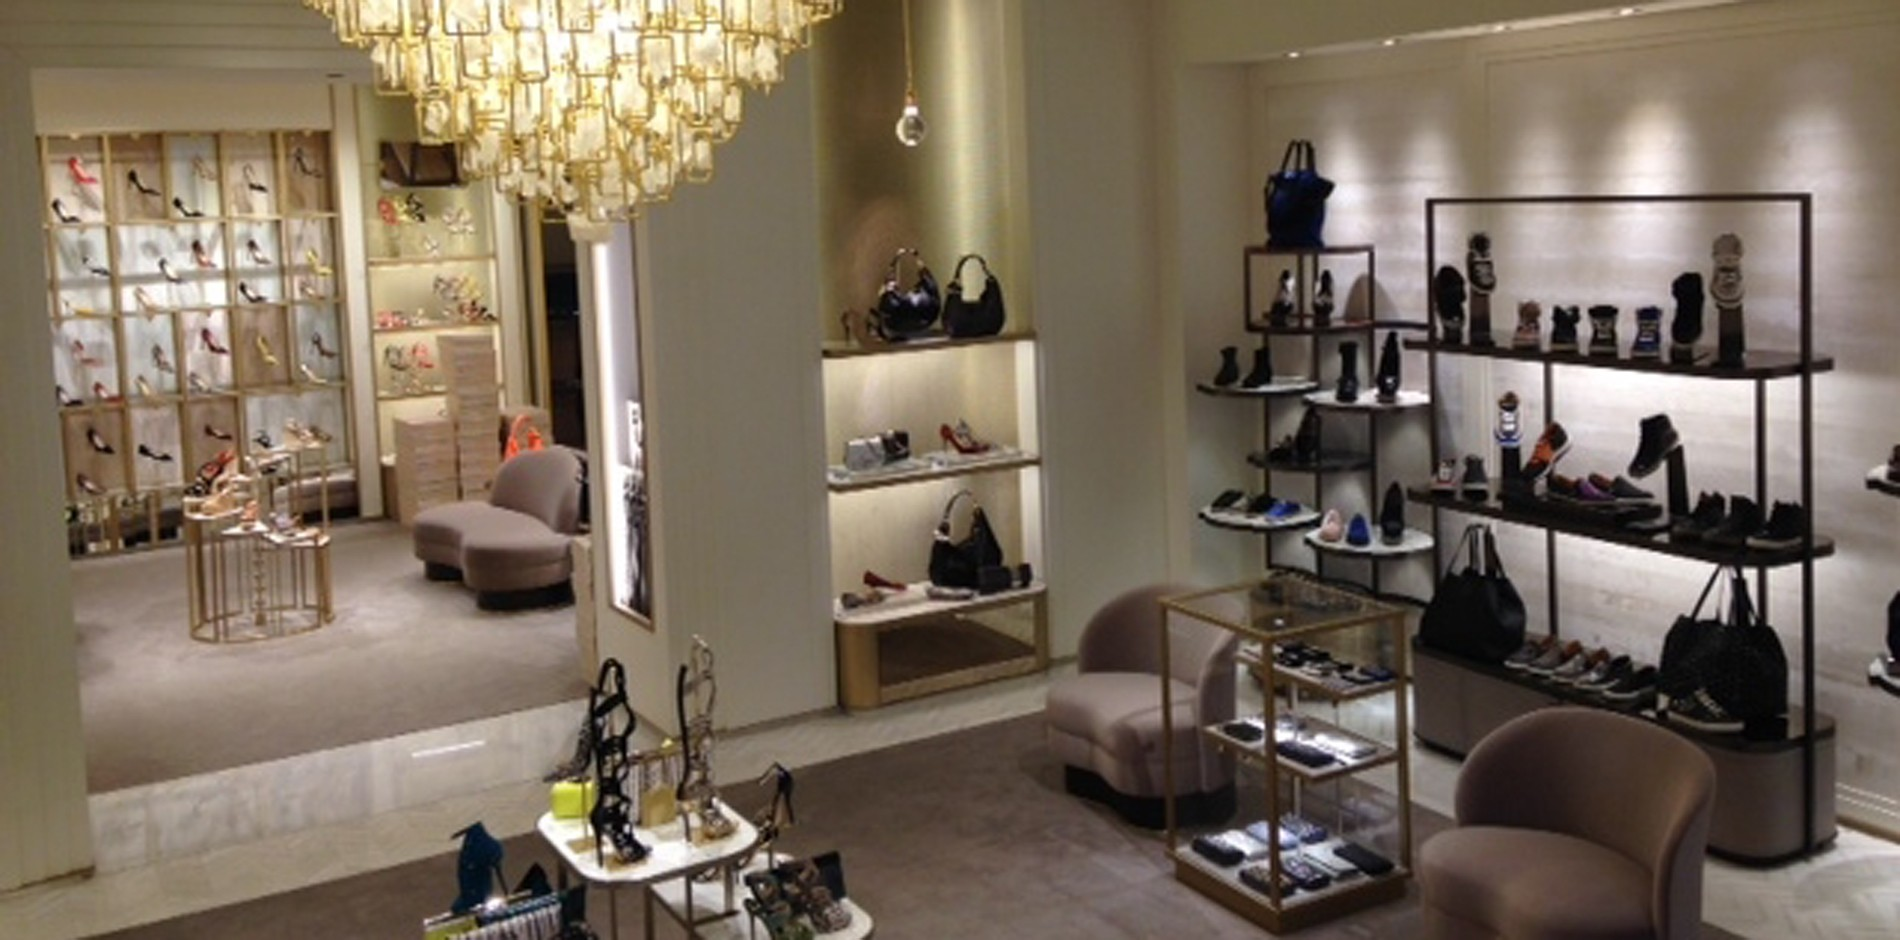 1af0da262d52 RELATED PROJECTS. Christian Dior 57th Street ...